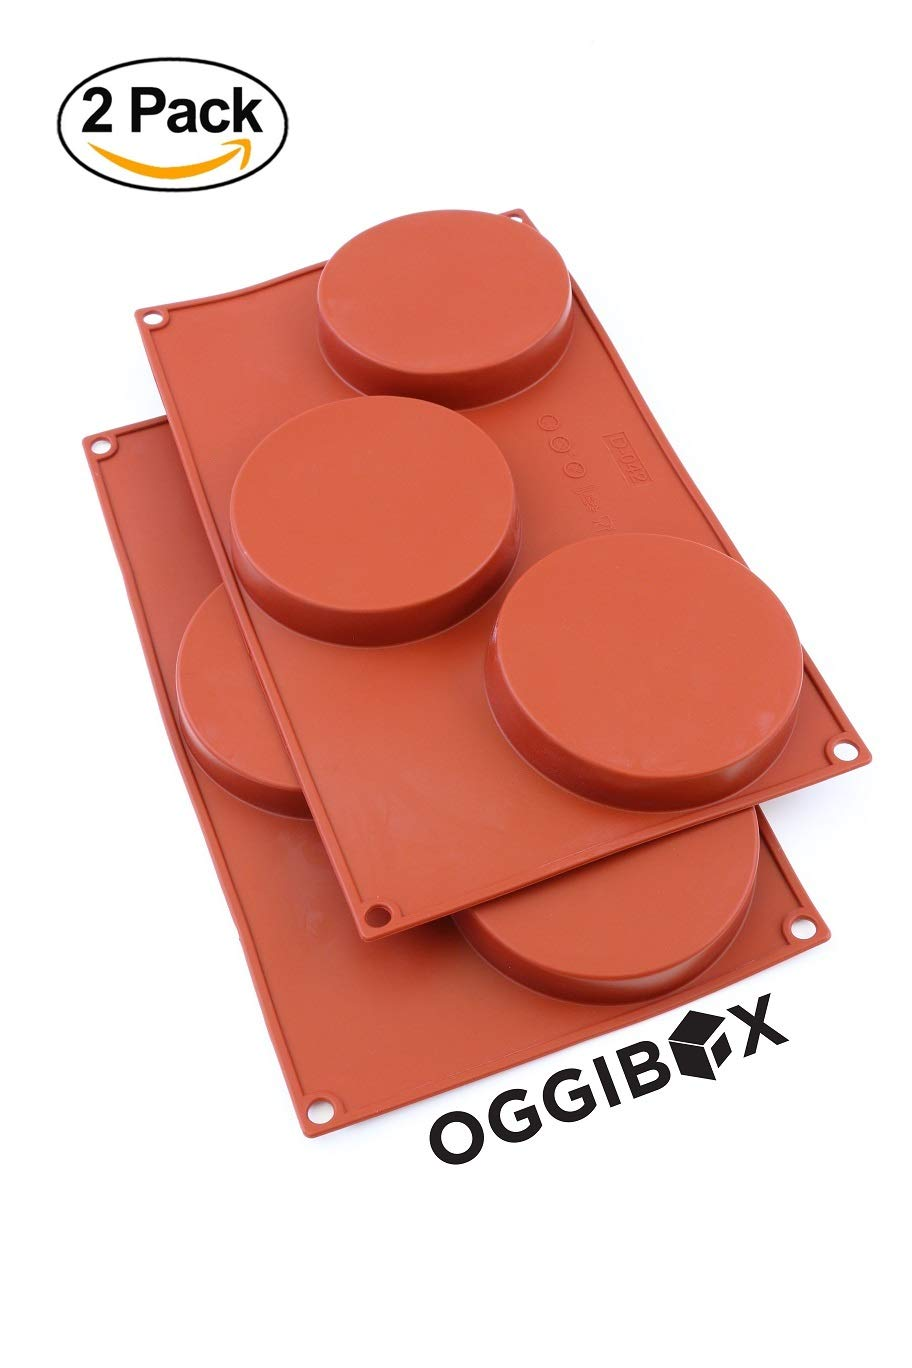 Oggibox 3-Cavity Silicone Disc Mold for Cake, Pie, Custard, Tart and Resin Coaster, Soap, Resin and More Pack of 2